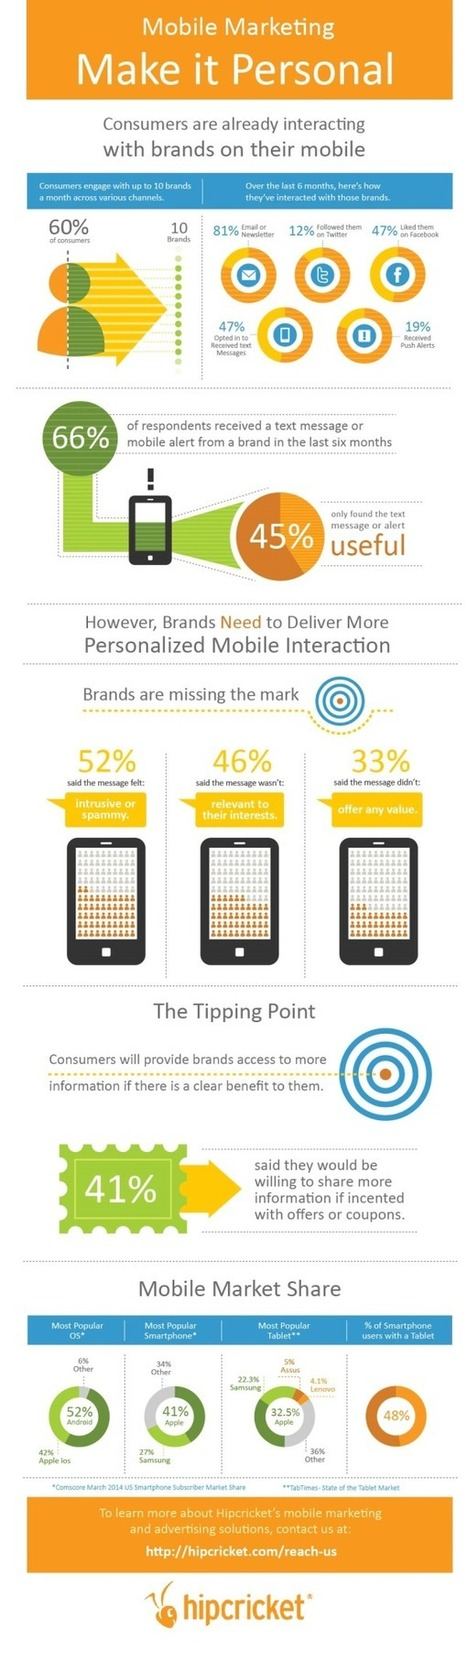 Mobile Marketing: Make it Personal | Marketing Strategy | Scoop.it